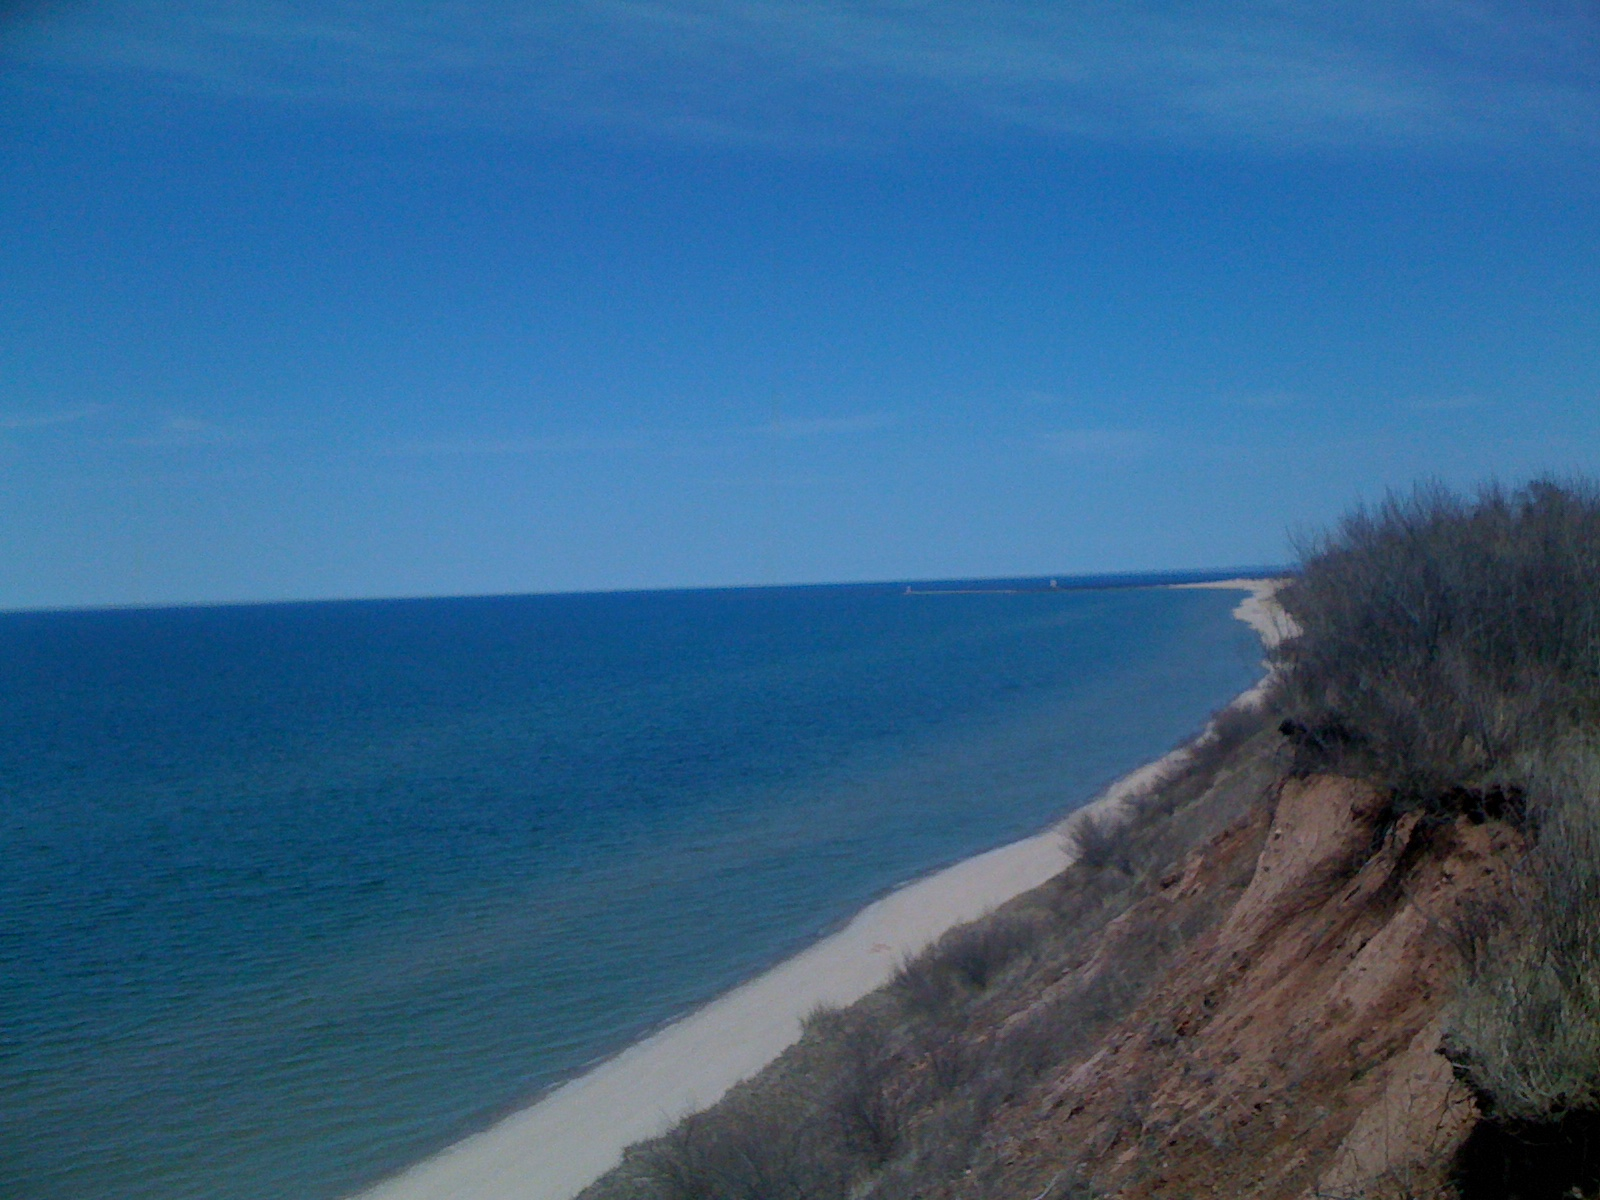 Stunning views from the bluff overlooking Lake Michigan.